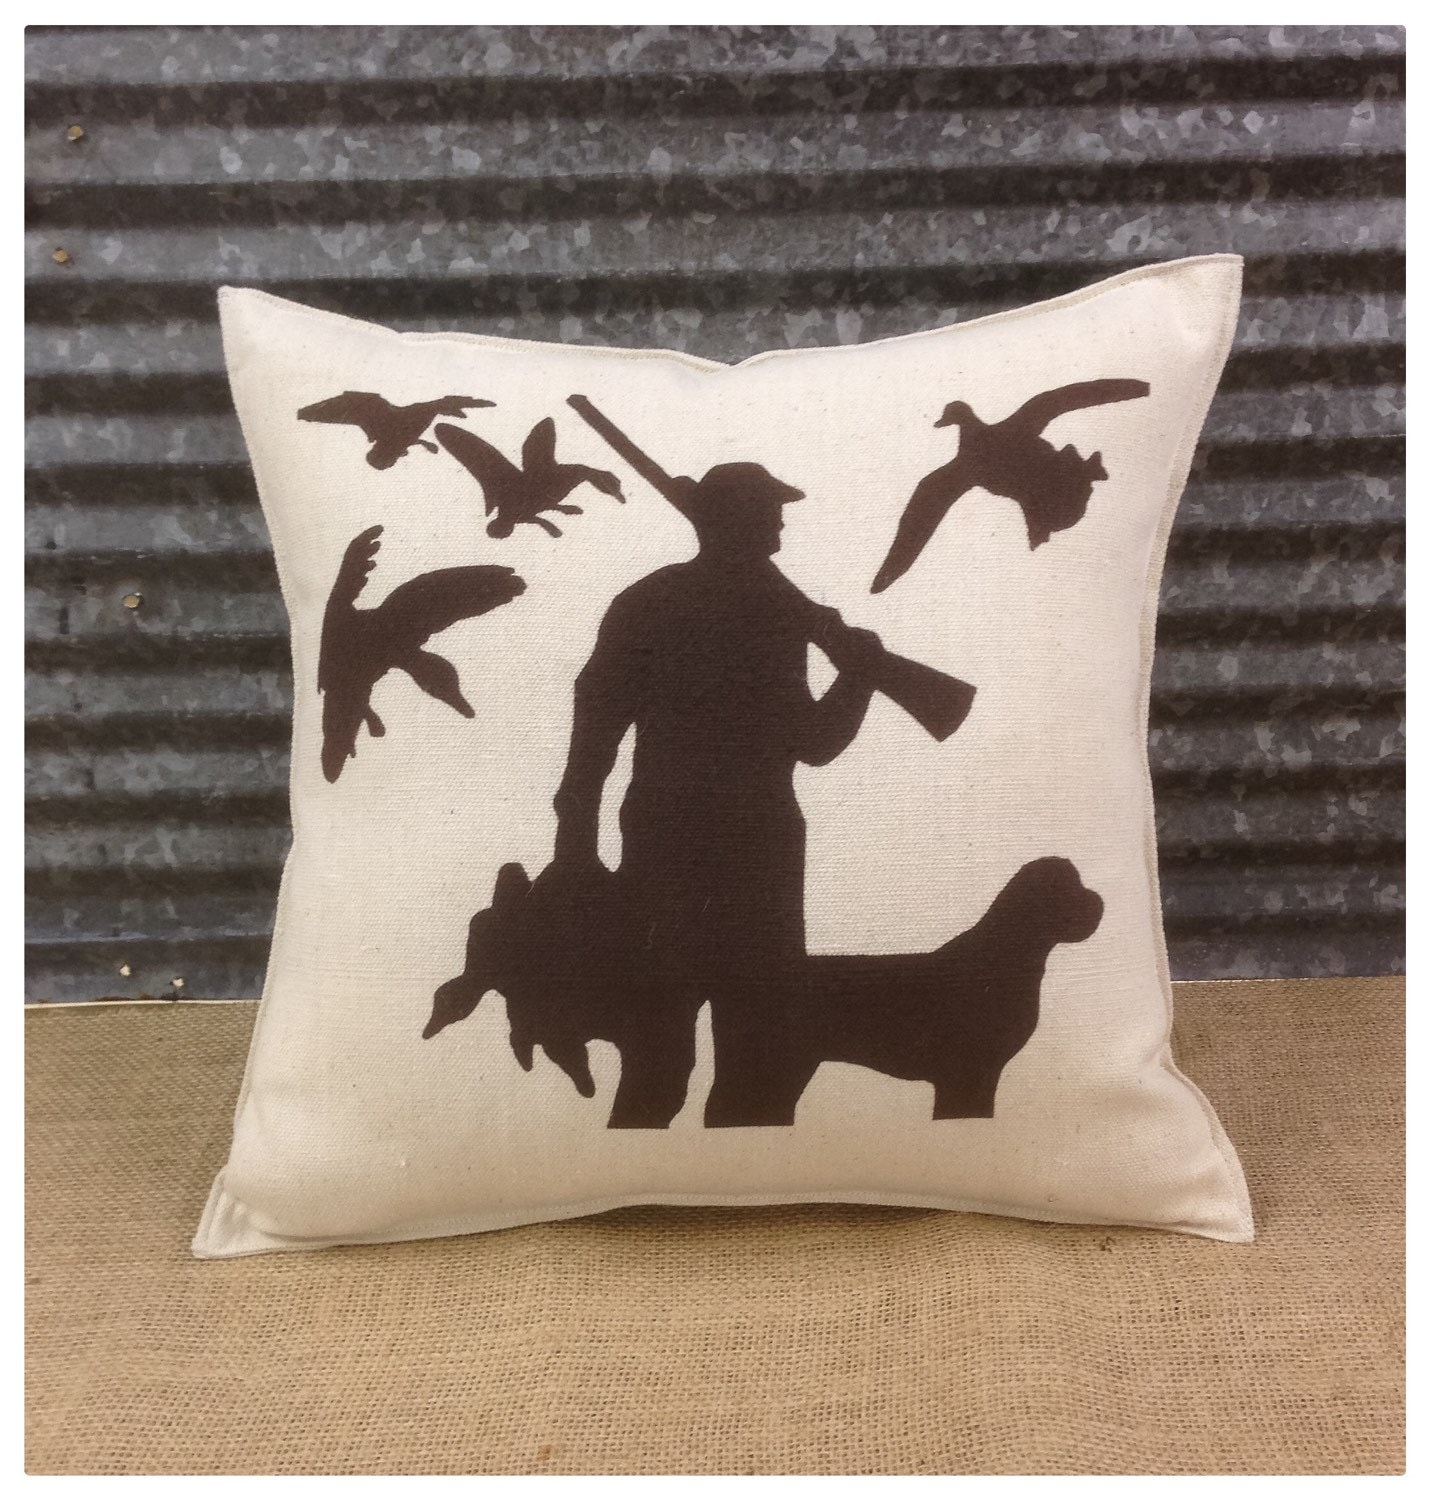 Decorative Pillow With Dog : Decorative Pillow with a hunter with his dog and ducks.